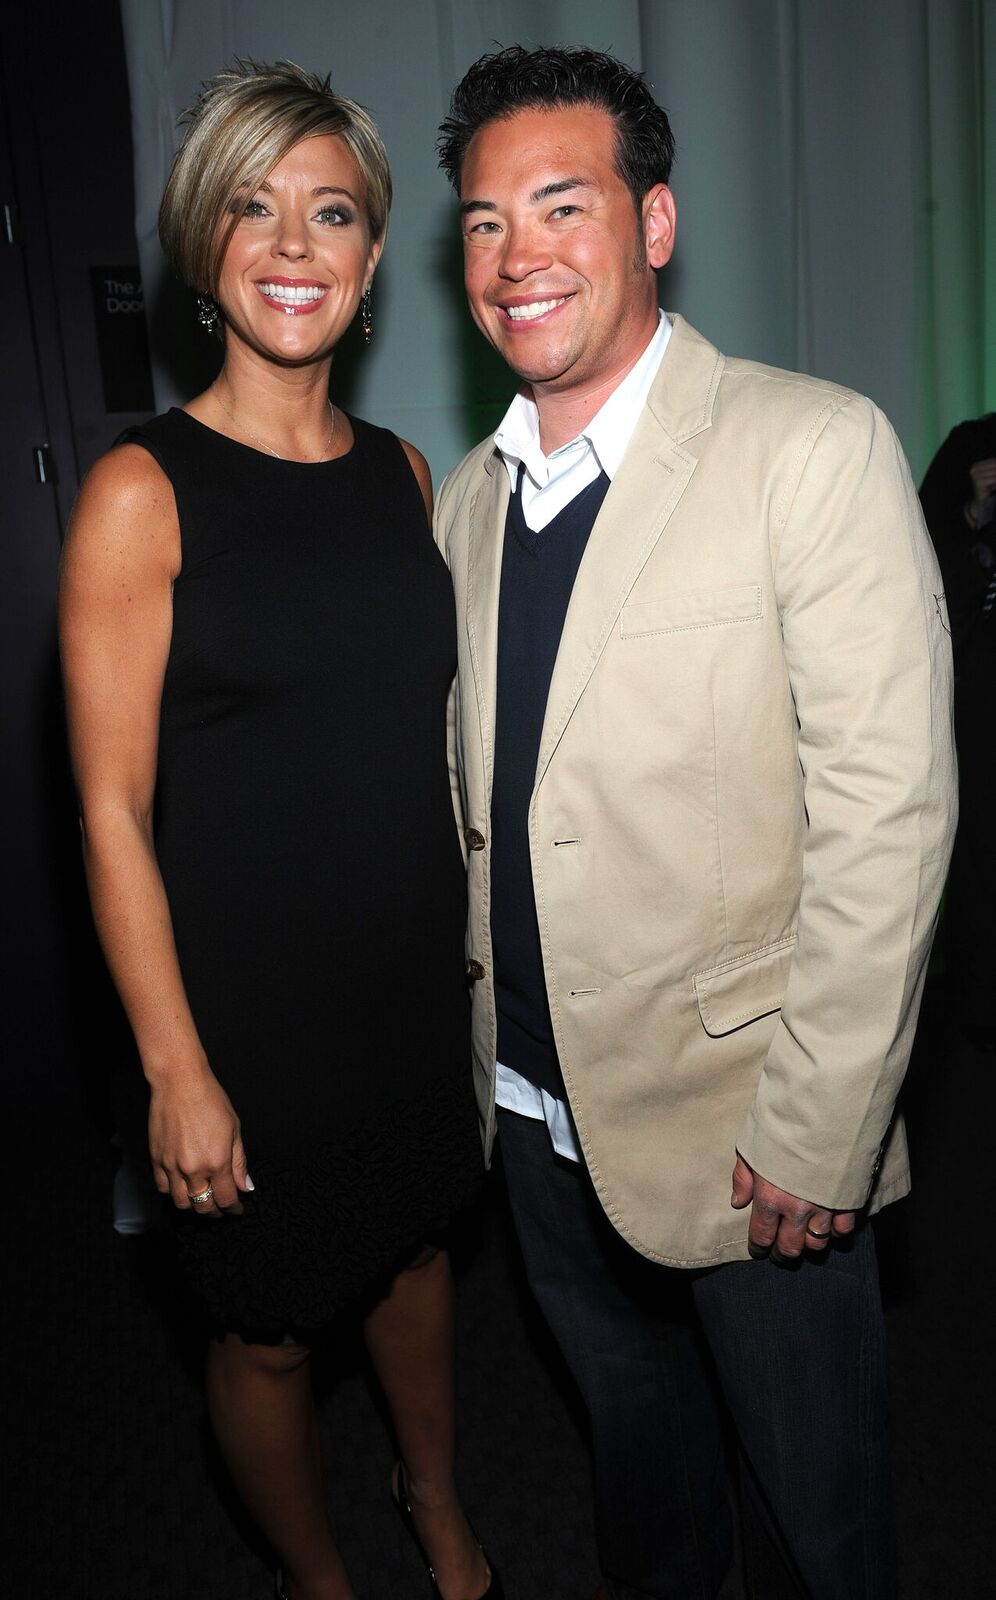 Kate Gosselin and Jon Gosselin attend Discovery Upfront at Jazz at Lincoln Center on April 2, 2009   Photo: Getty Images